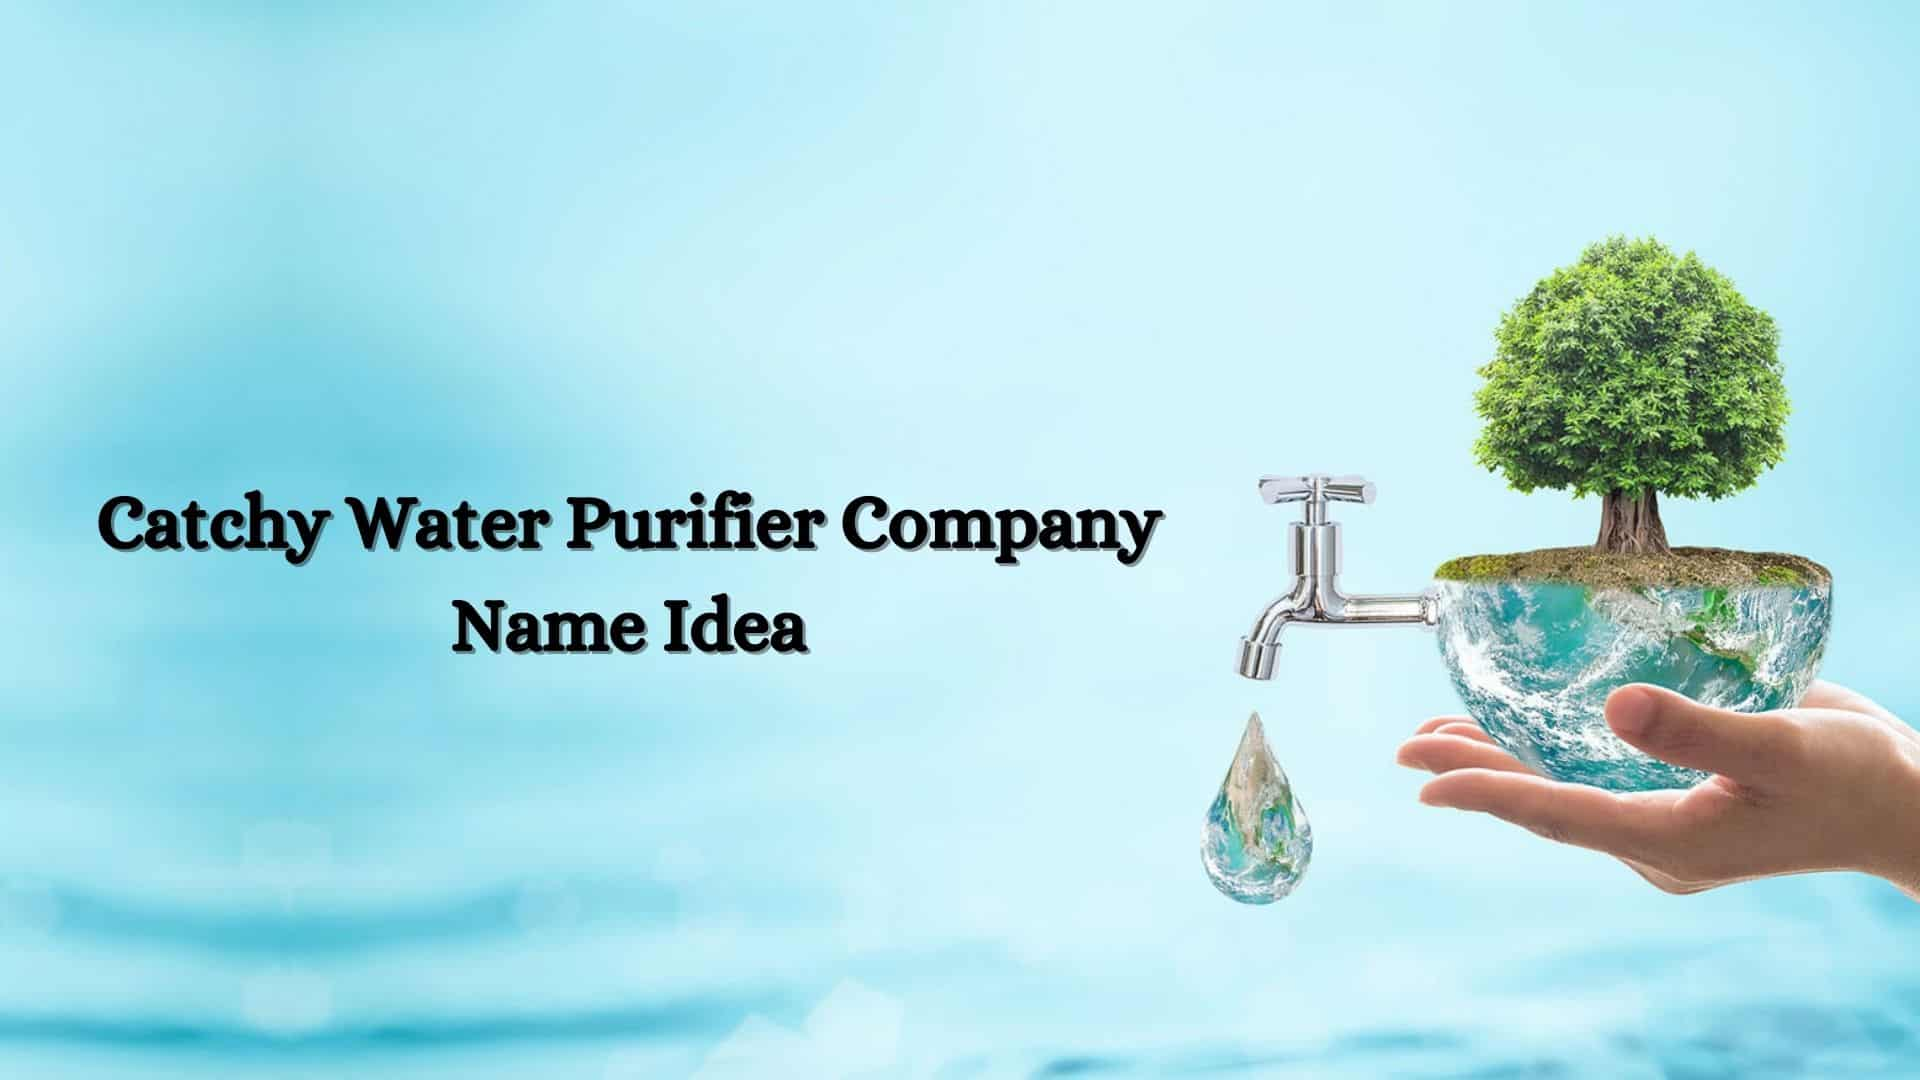 Catchy Water Purifier Company Name Idea